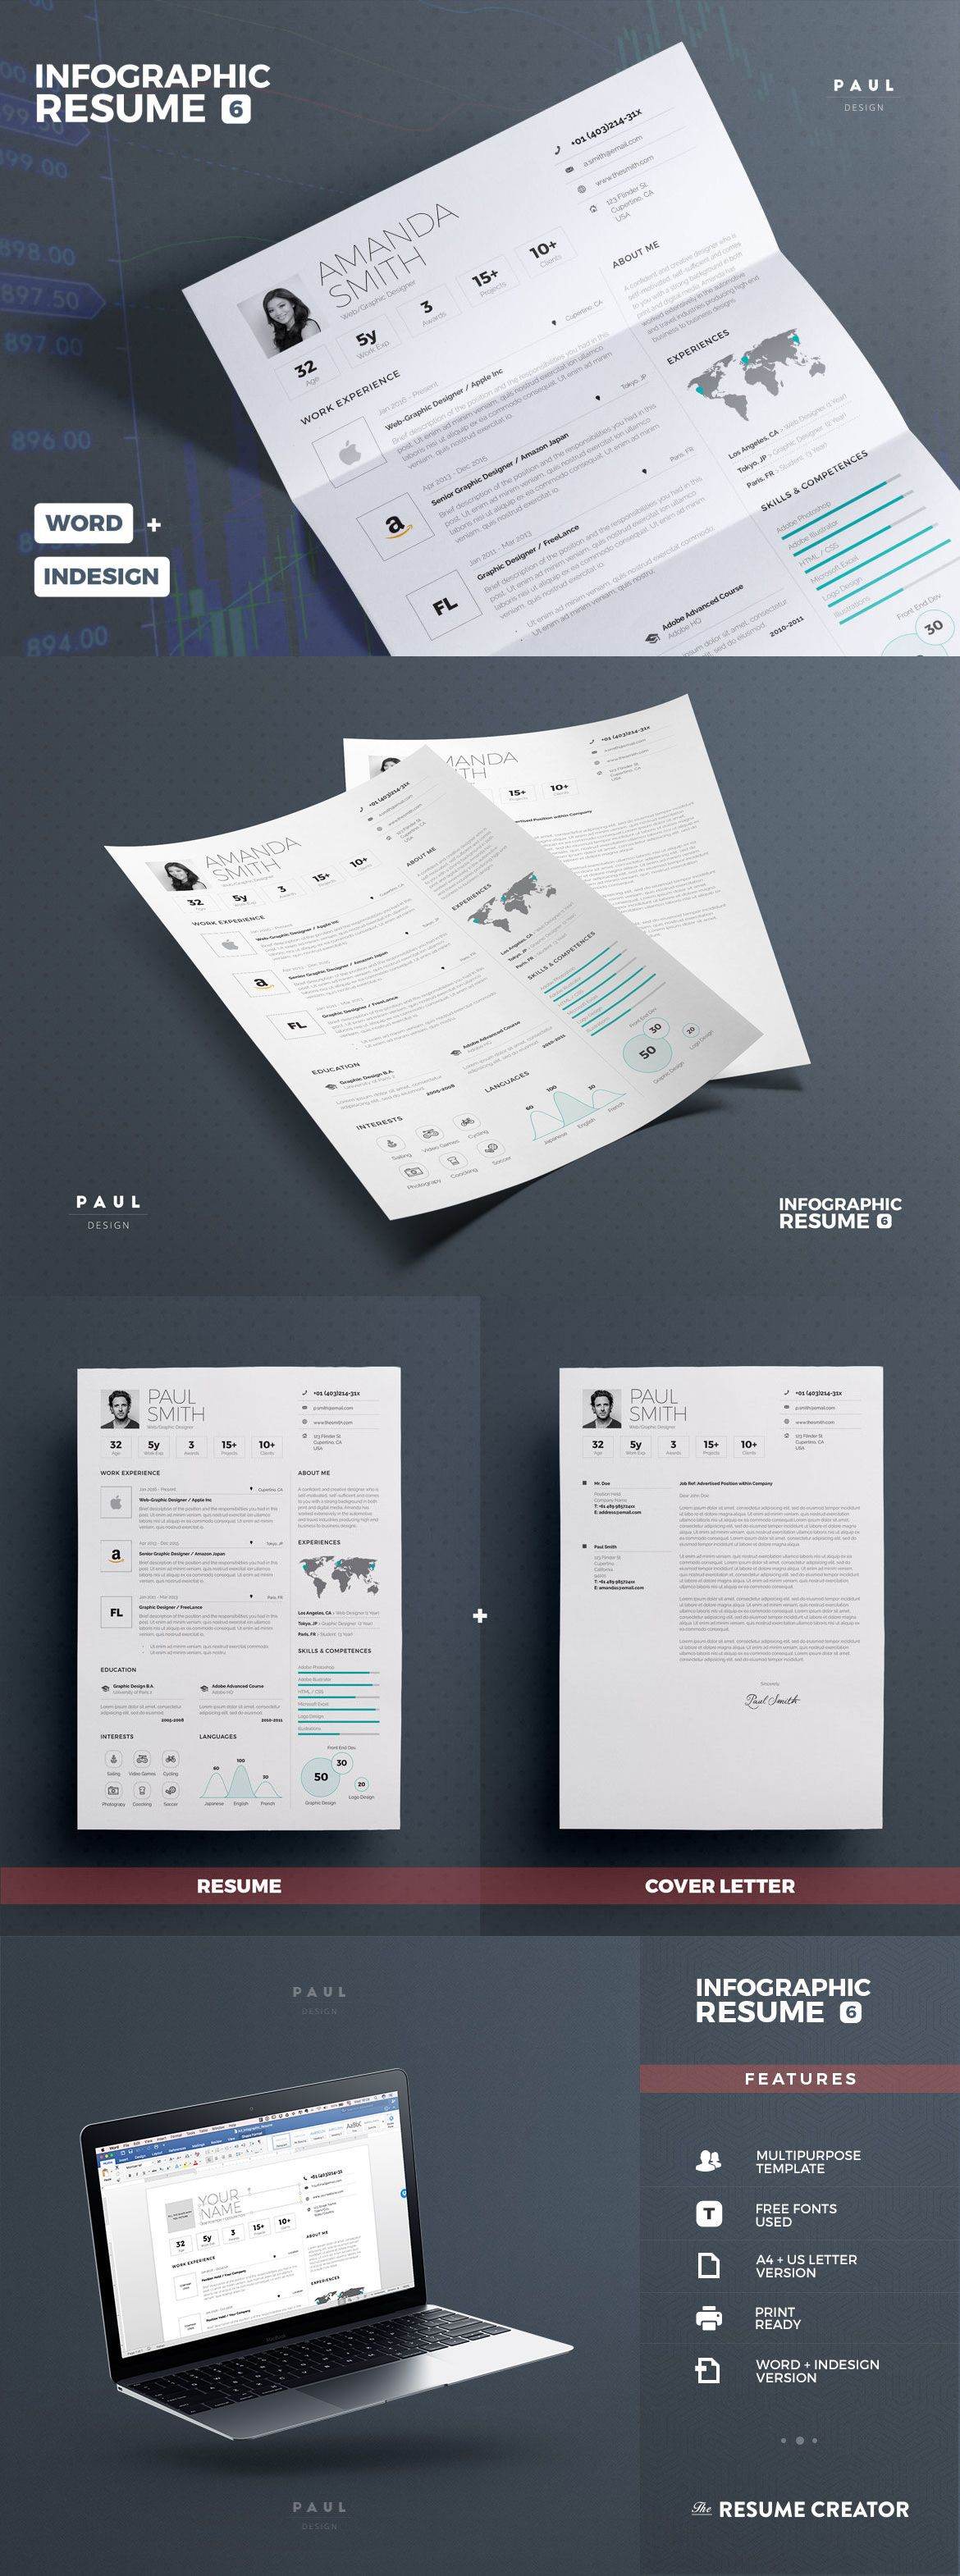 Infographic Resume Cv Template Indesign Indd Ms